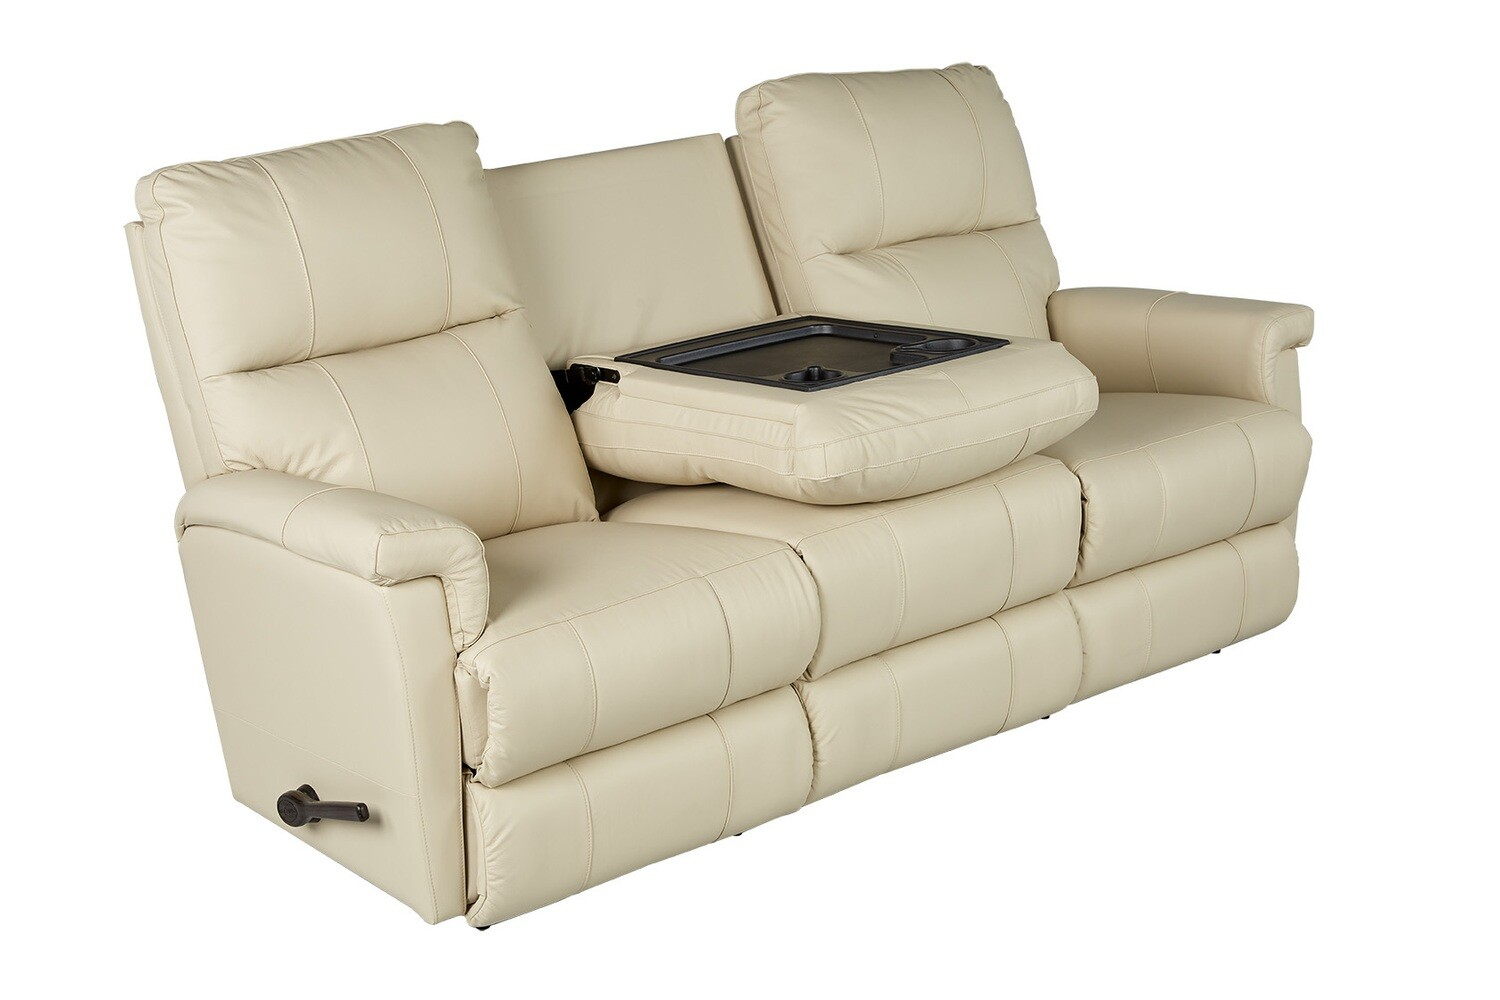 ETHAN Leather Reclining Sofa w/ Drop Down Table